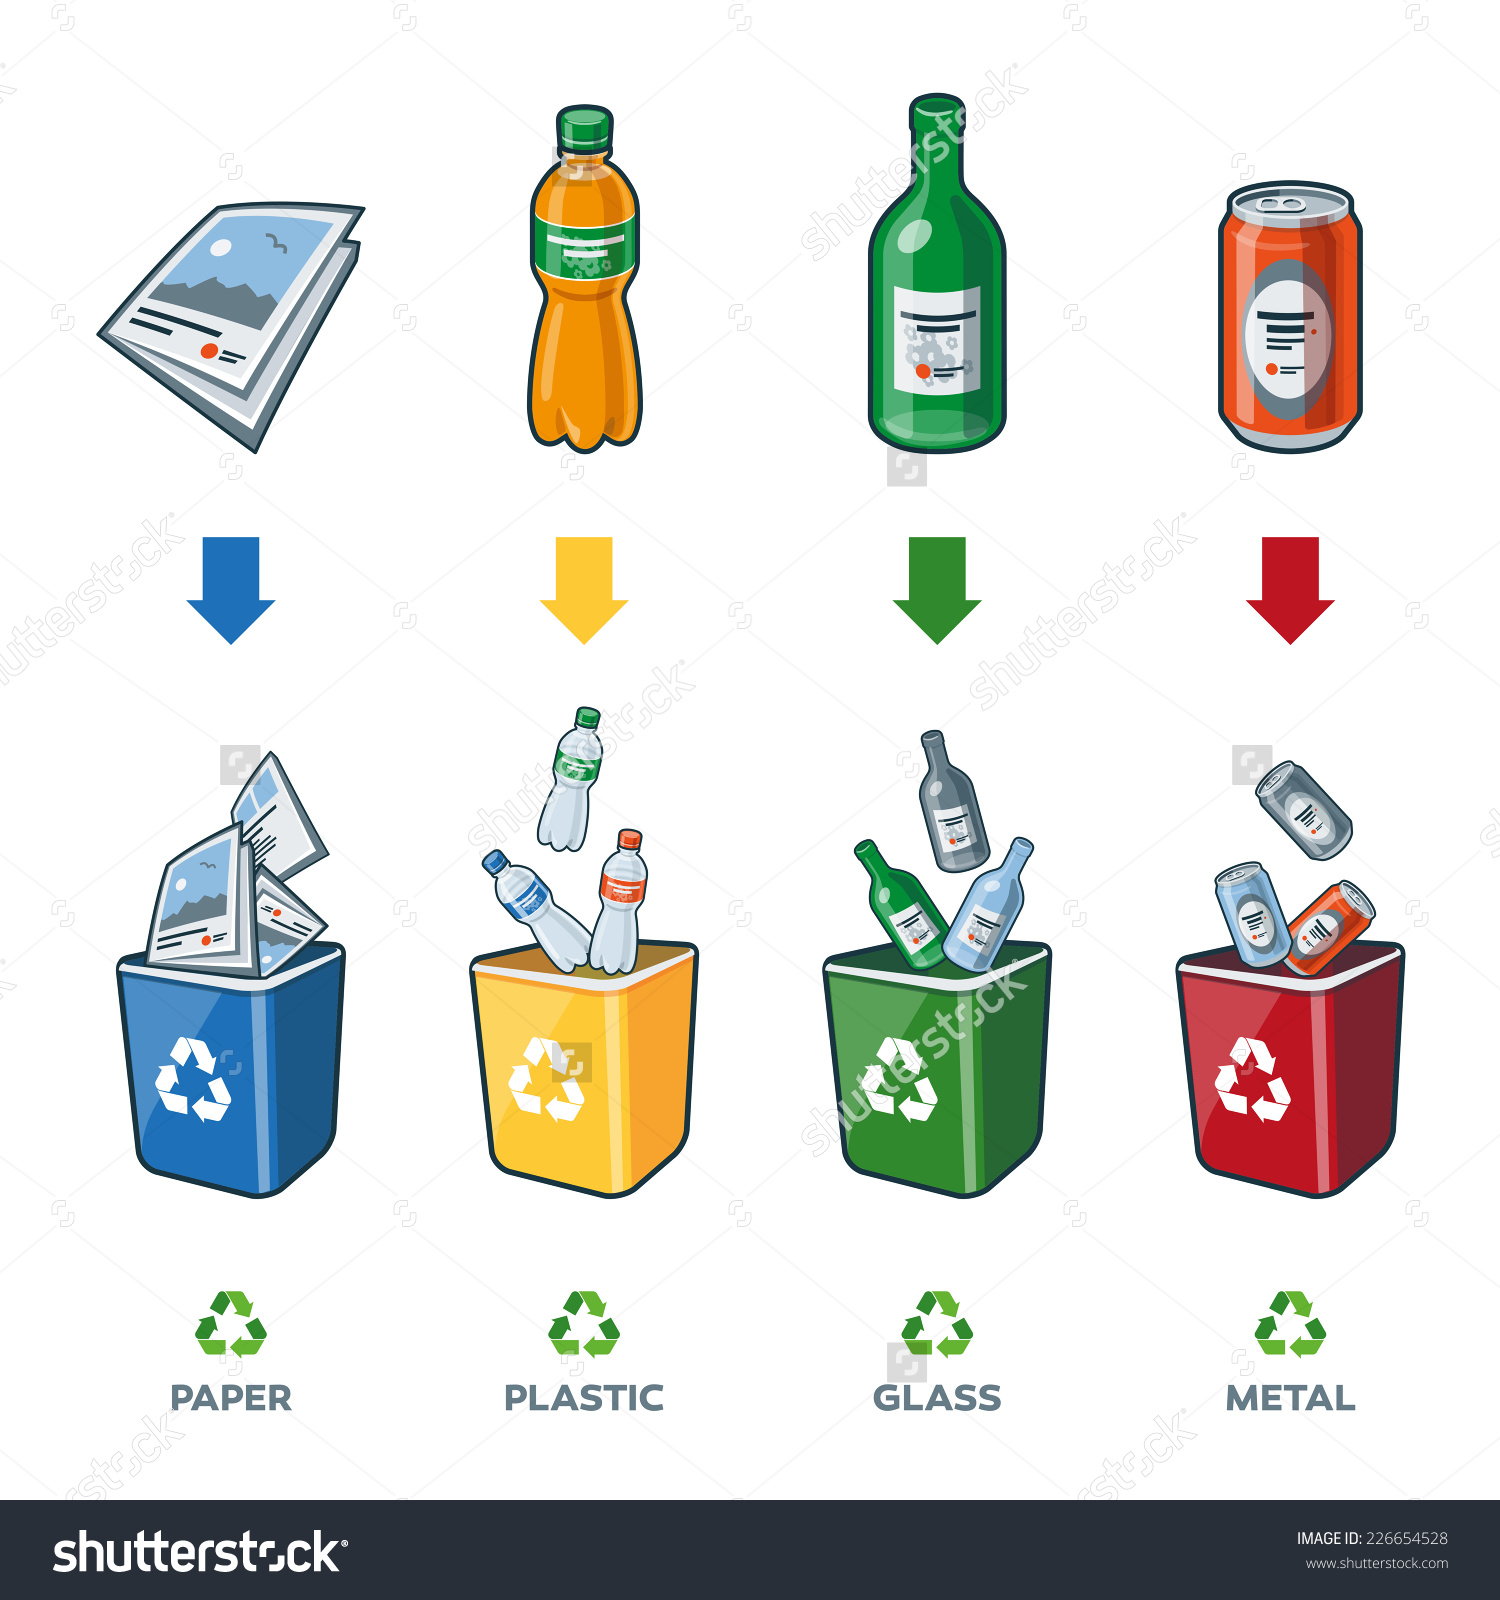 Benefits of Waste to Energy